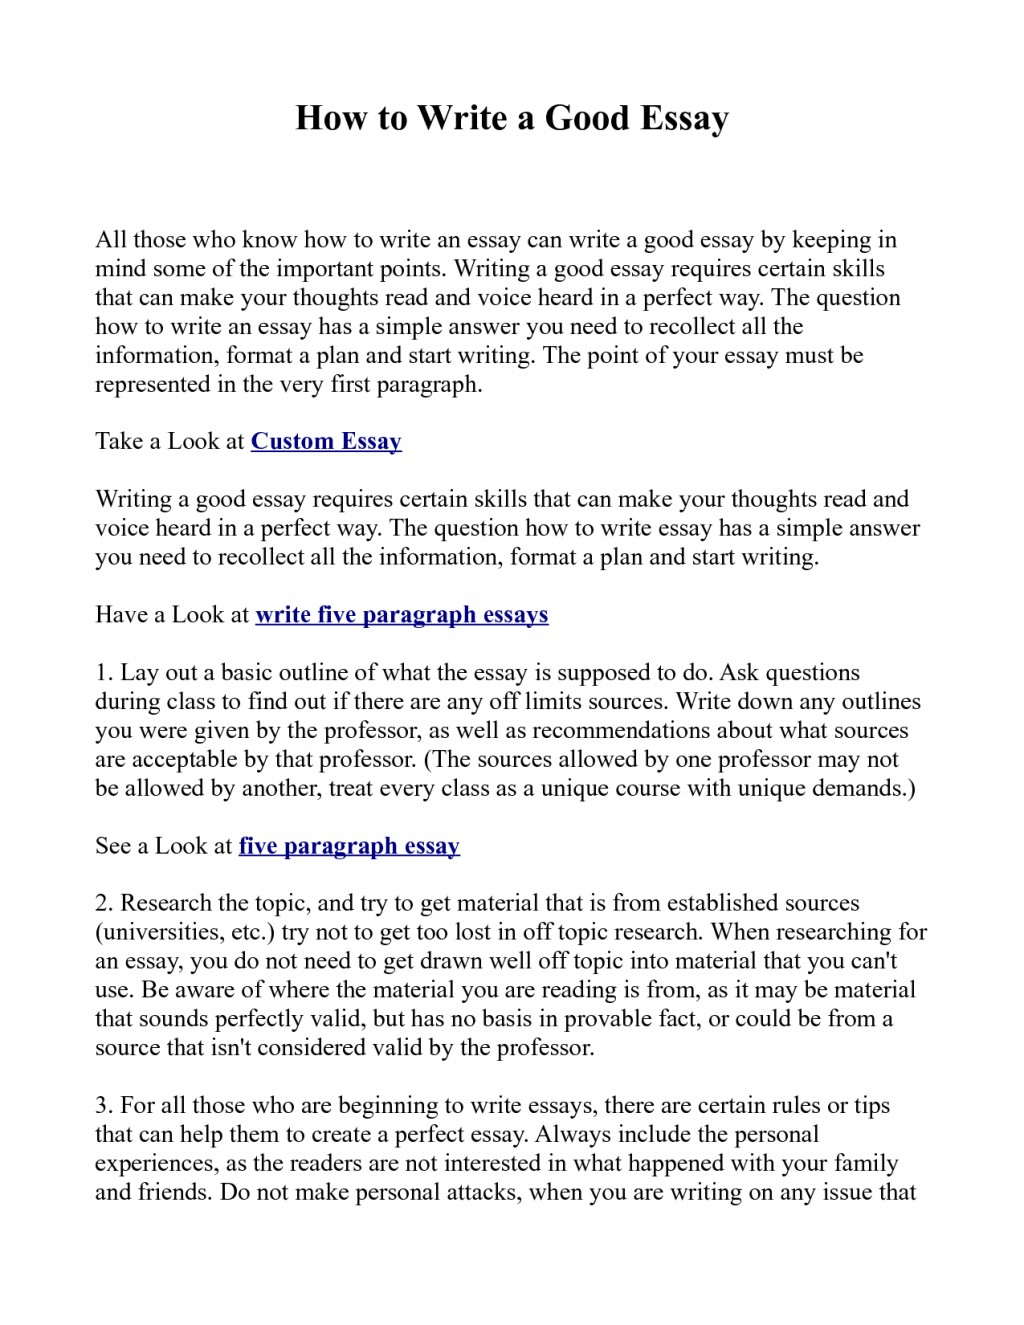 004 Exidscl How To Write Proper Essay Frightening A Good Argumentative Outline Narrative For College Large